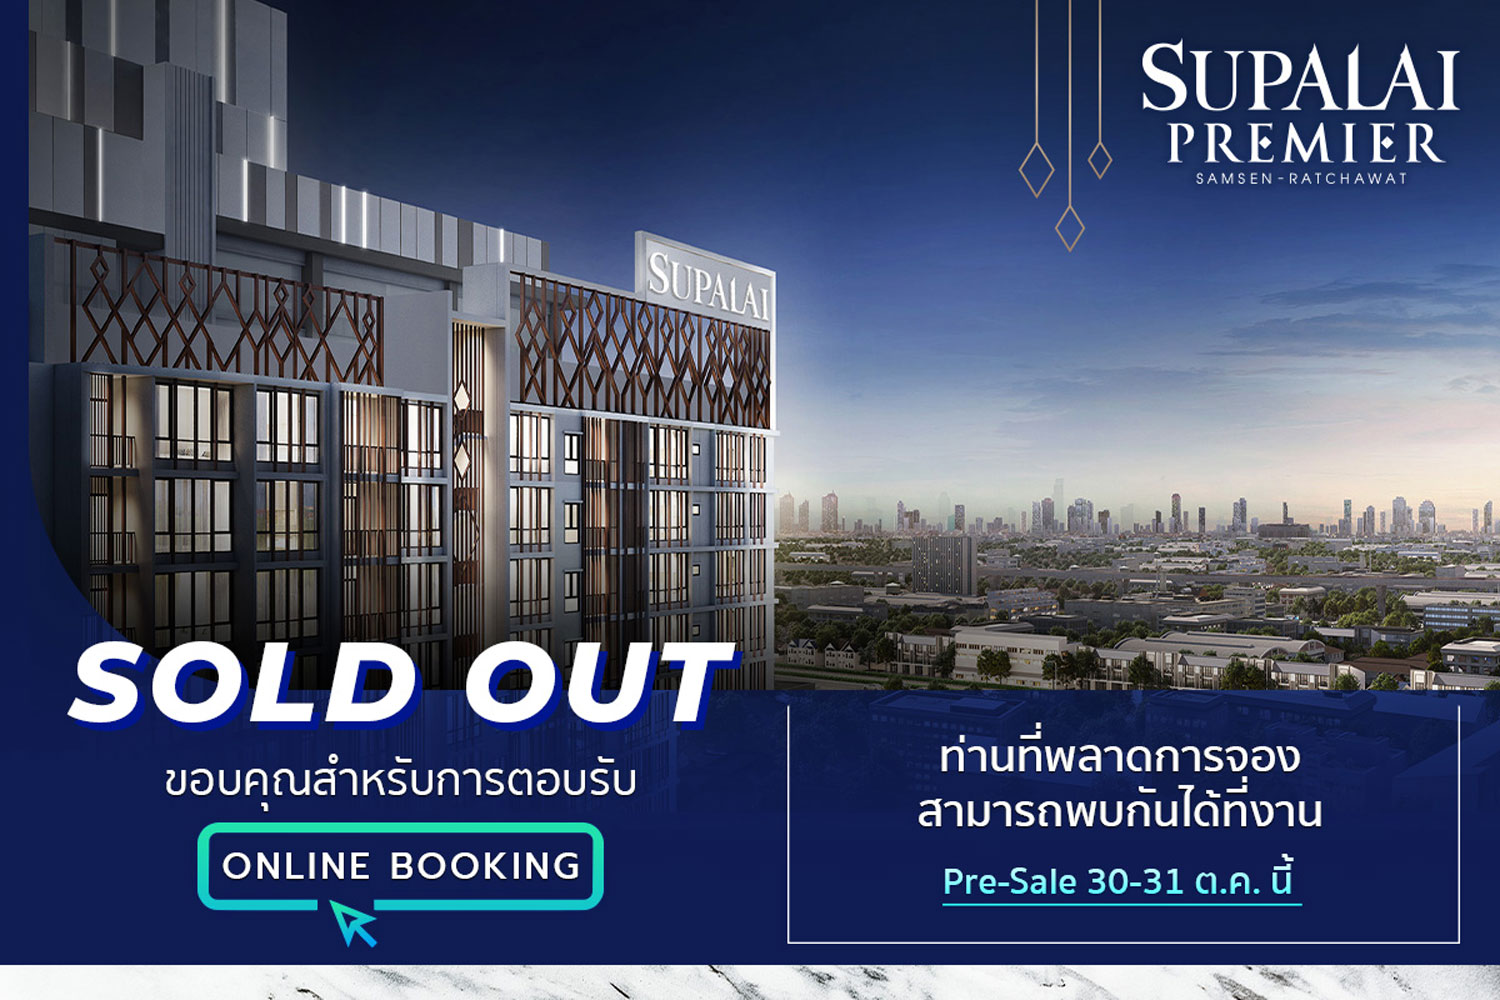 Supalai Premier Samsen-Ratchawat Condo initial online booking sold-out!